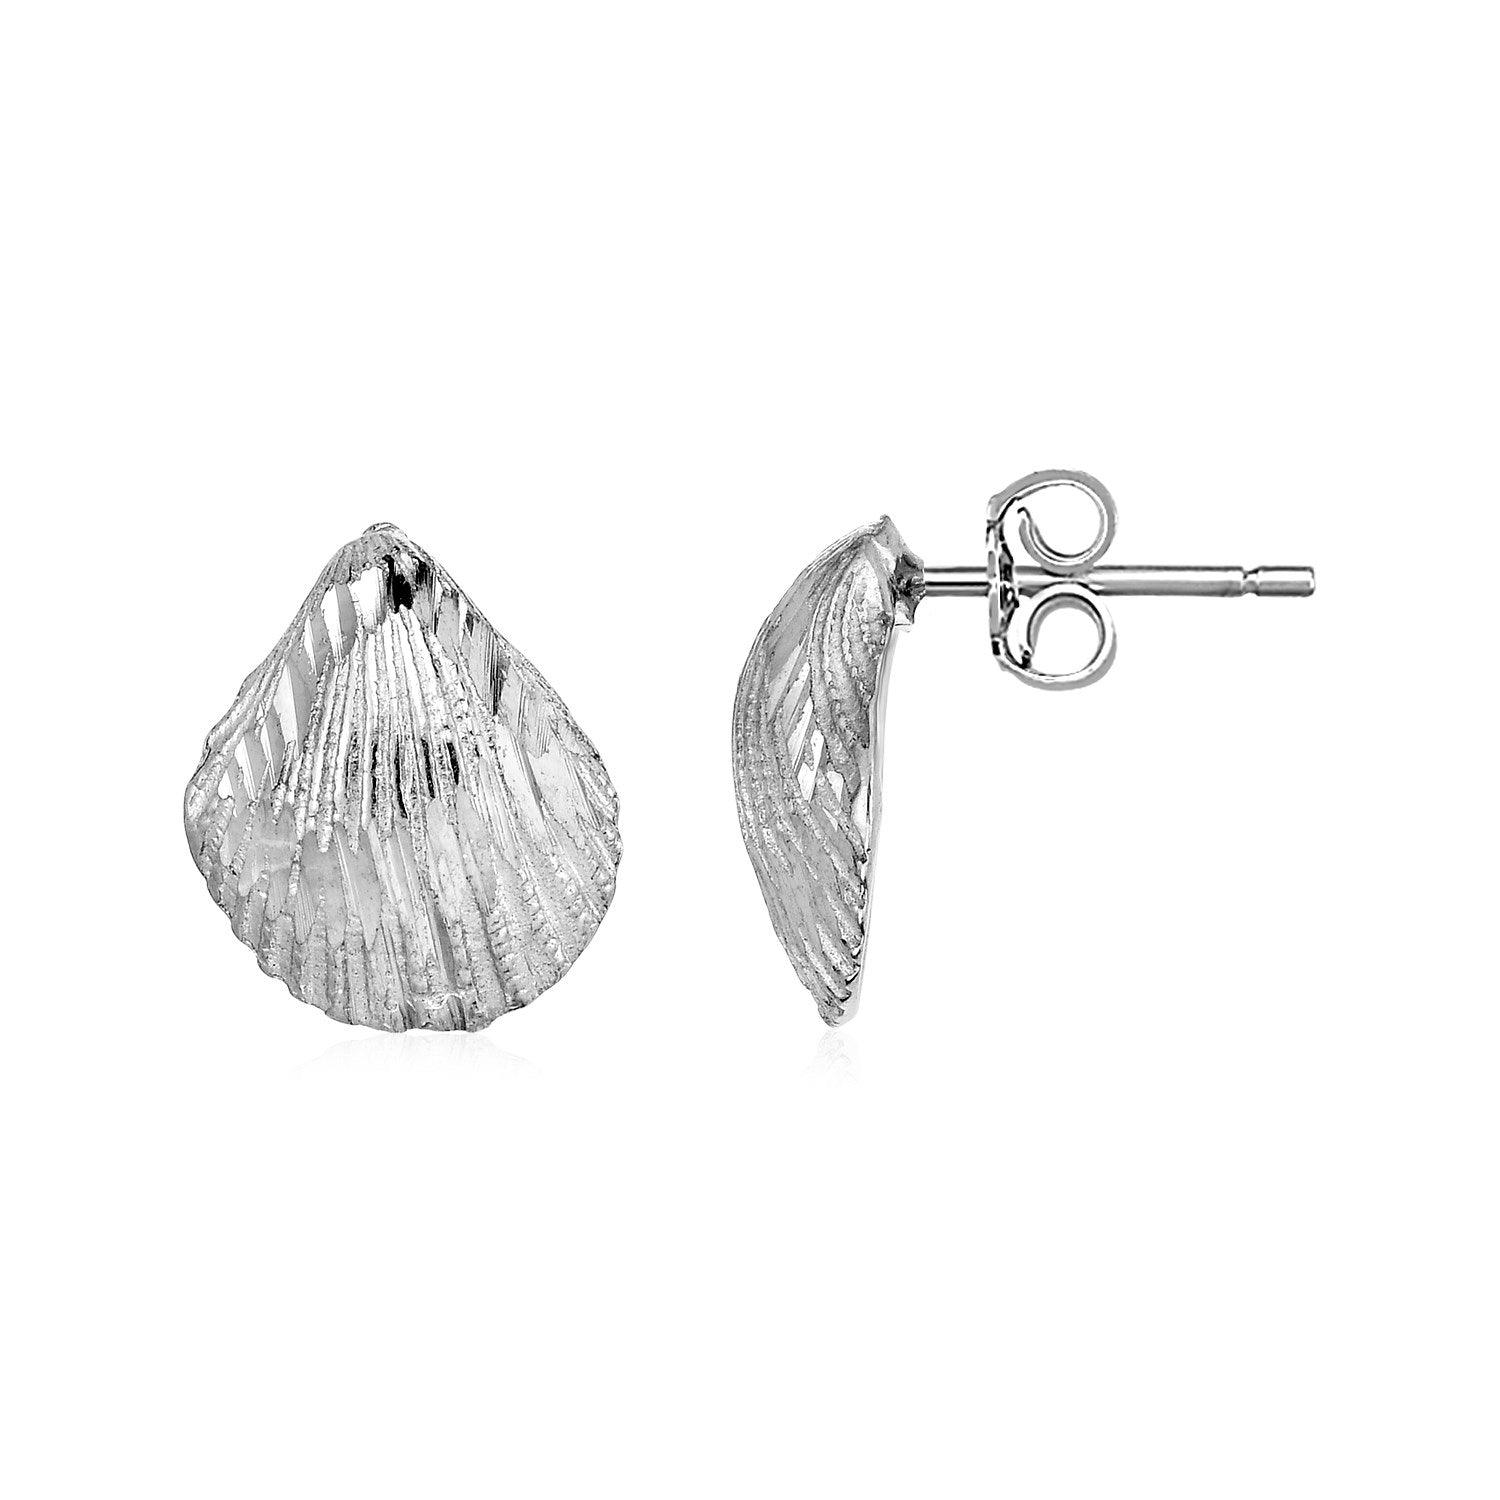 Textured Seashell Earrings in Sterling Silver